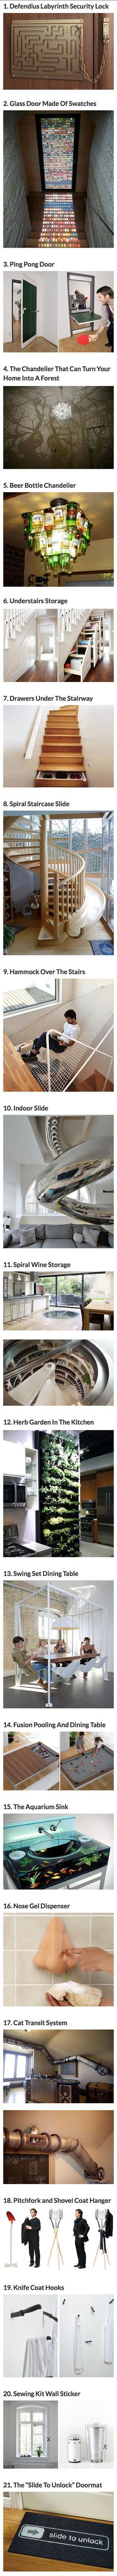 21 Cool home ideas that think outside the box